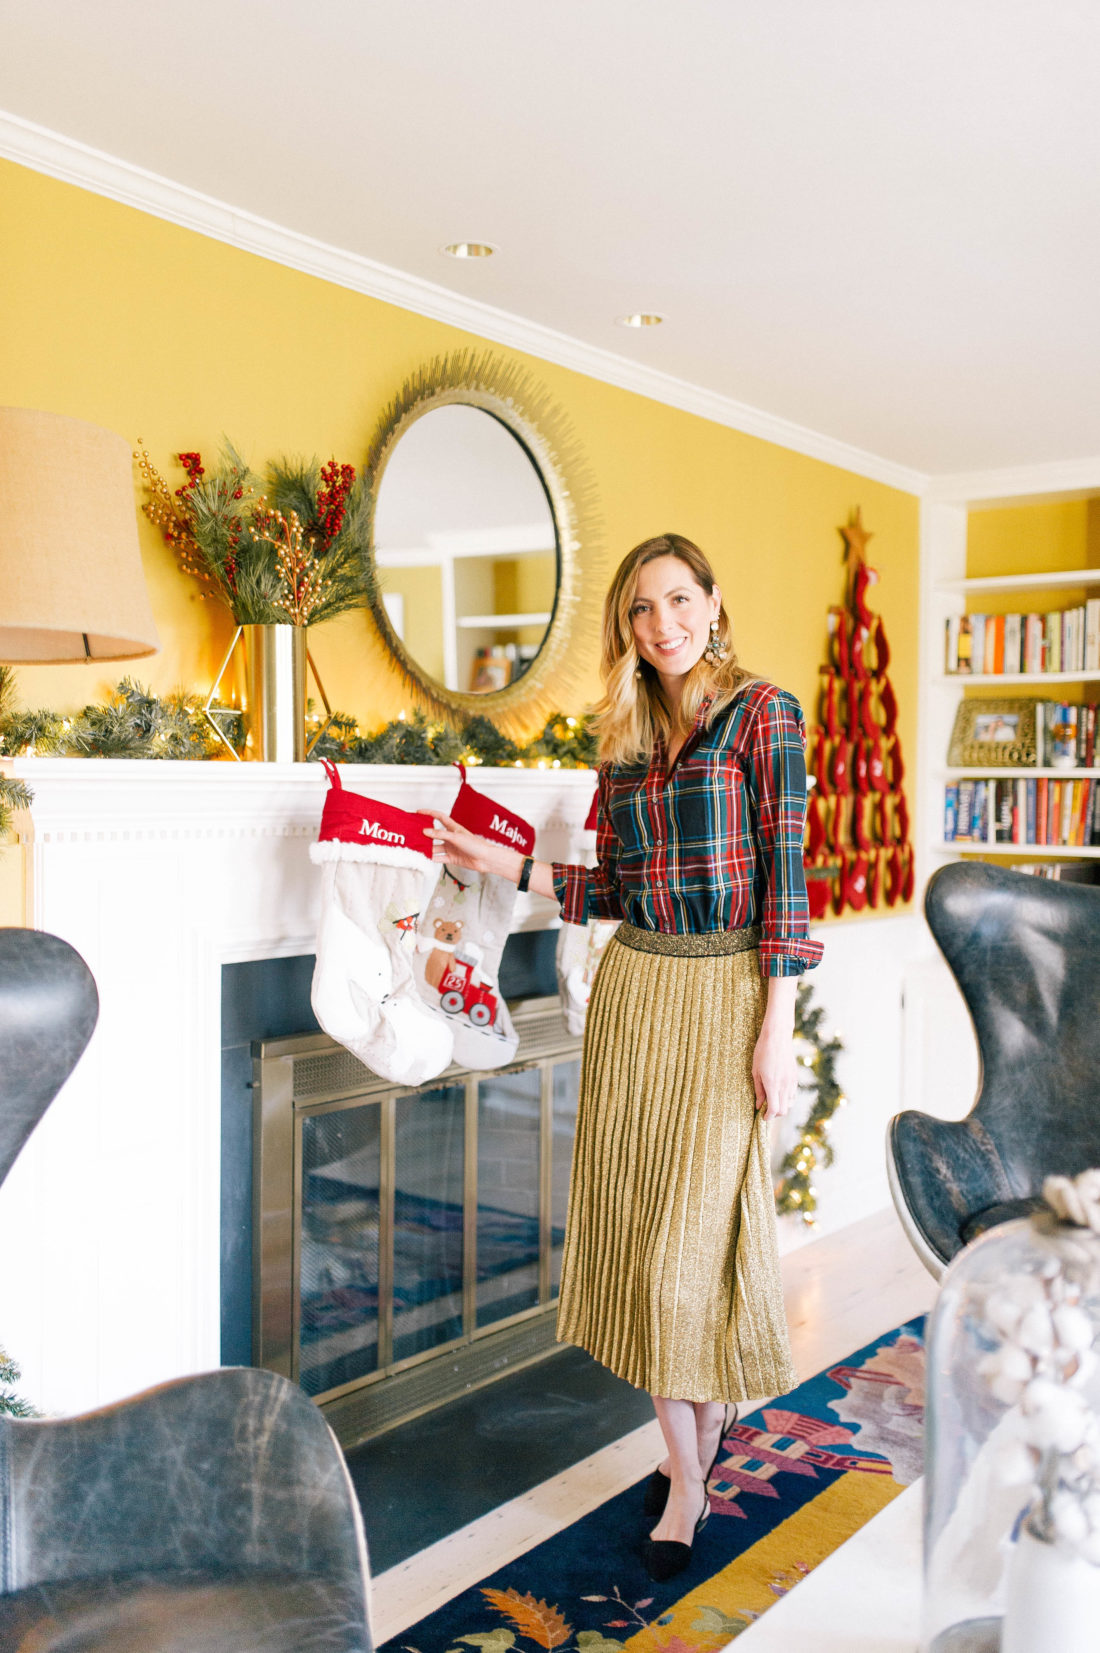 Eva Amurri Martino stands in front of the mantel in her living room that his hung with stockings for Christmas